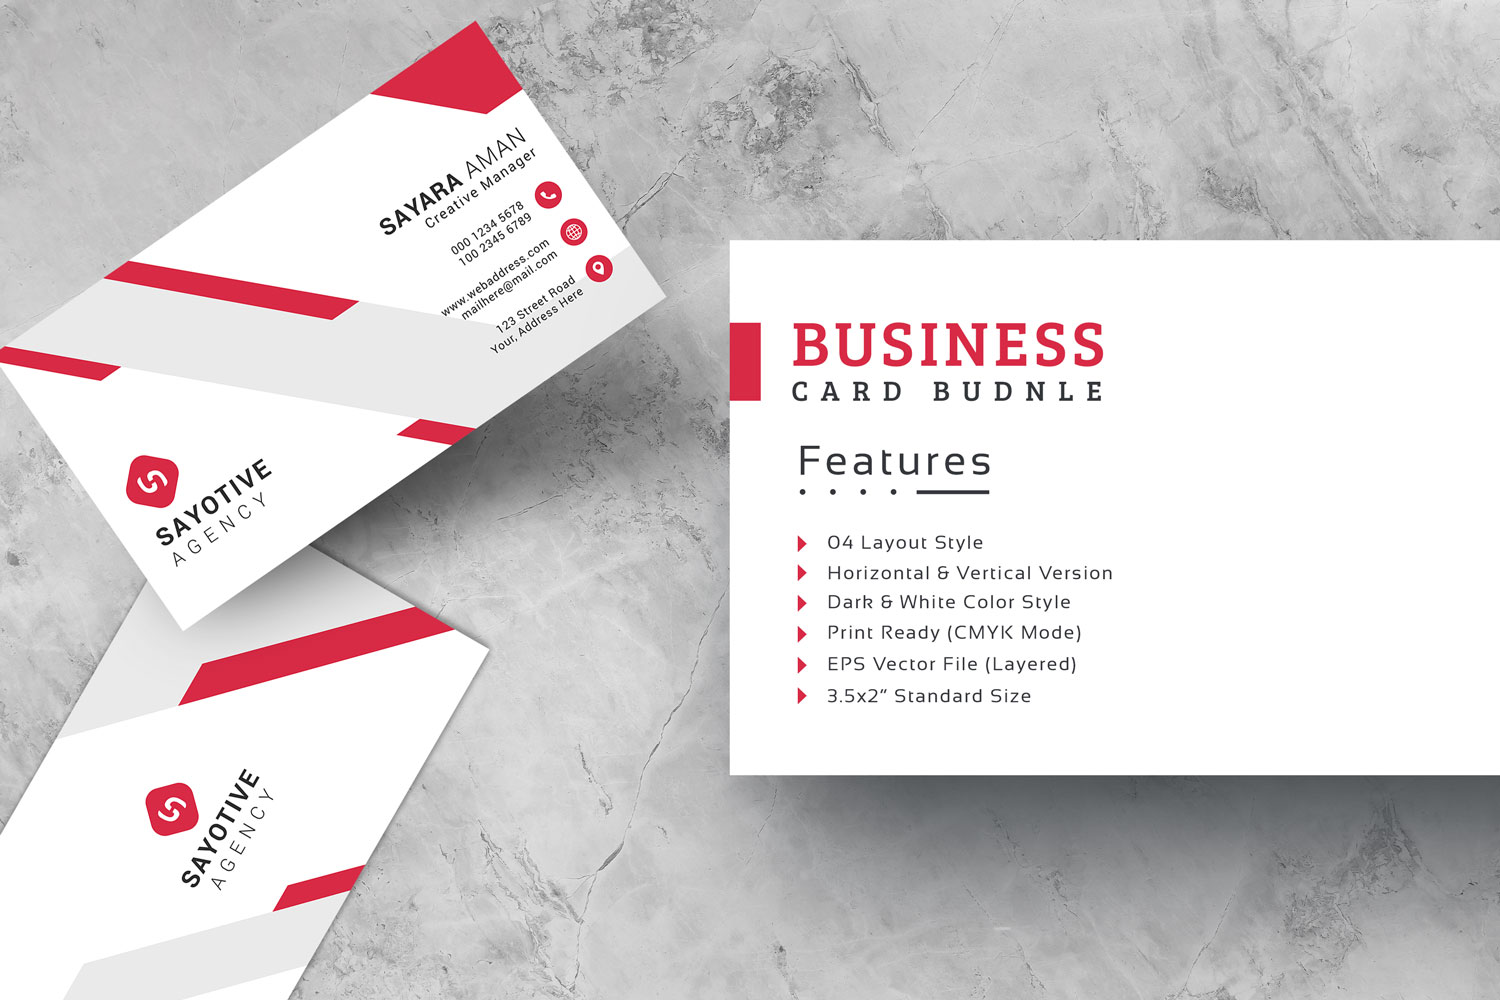 Business Card With Four Layout Style Corporate Identity Template